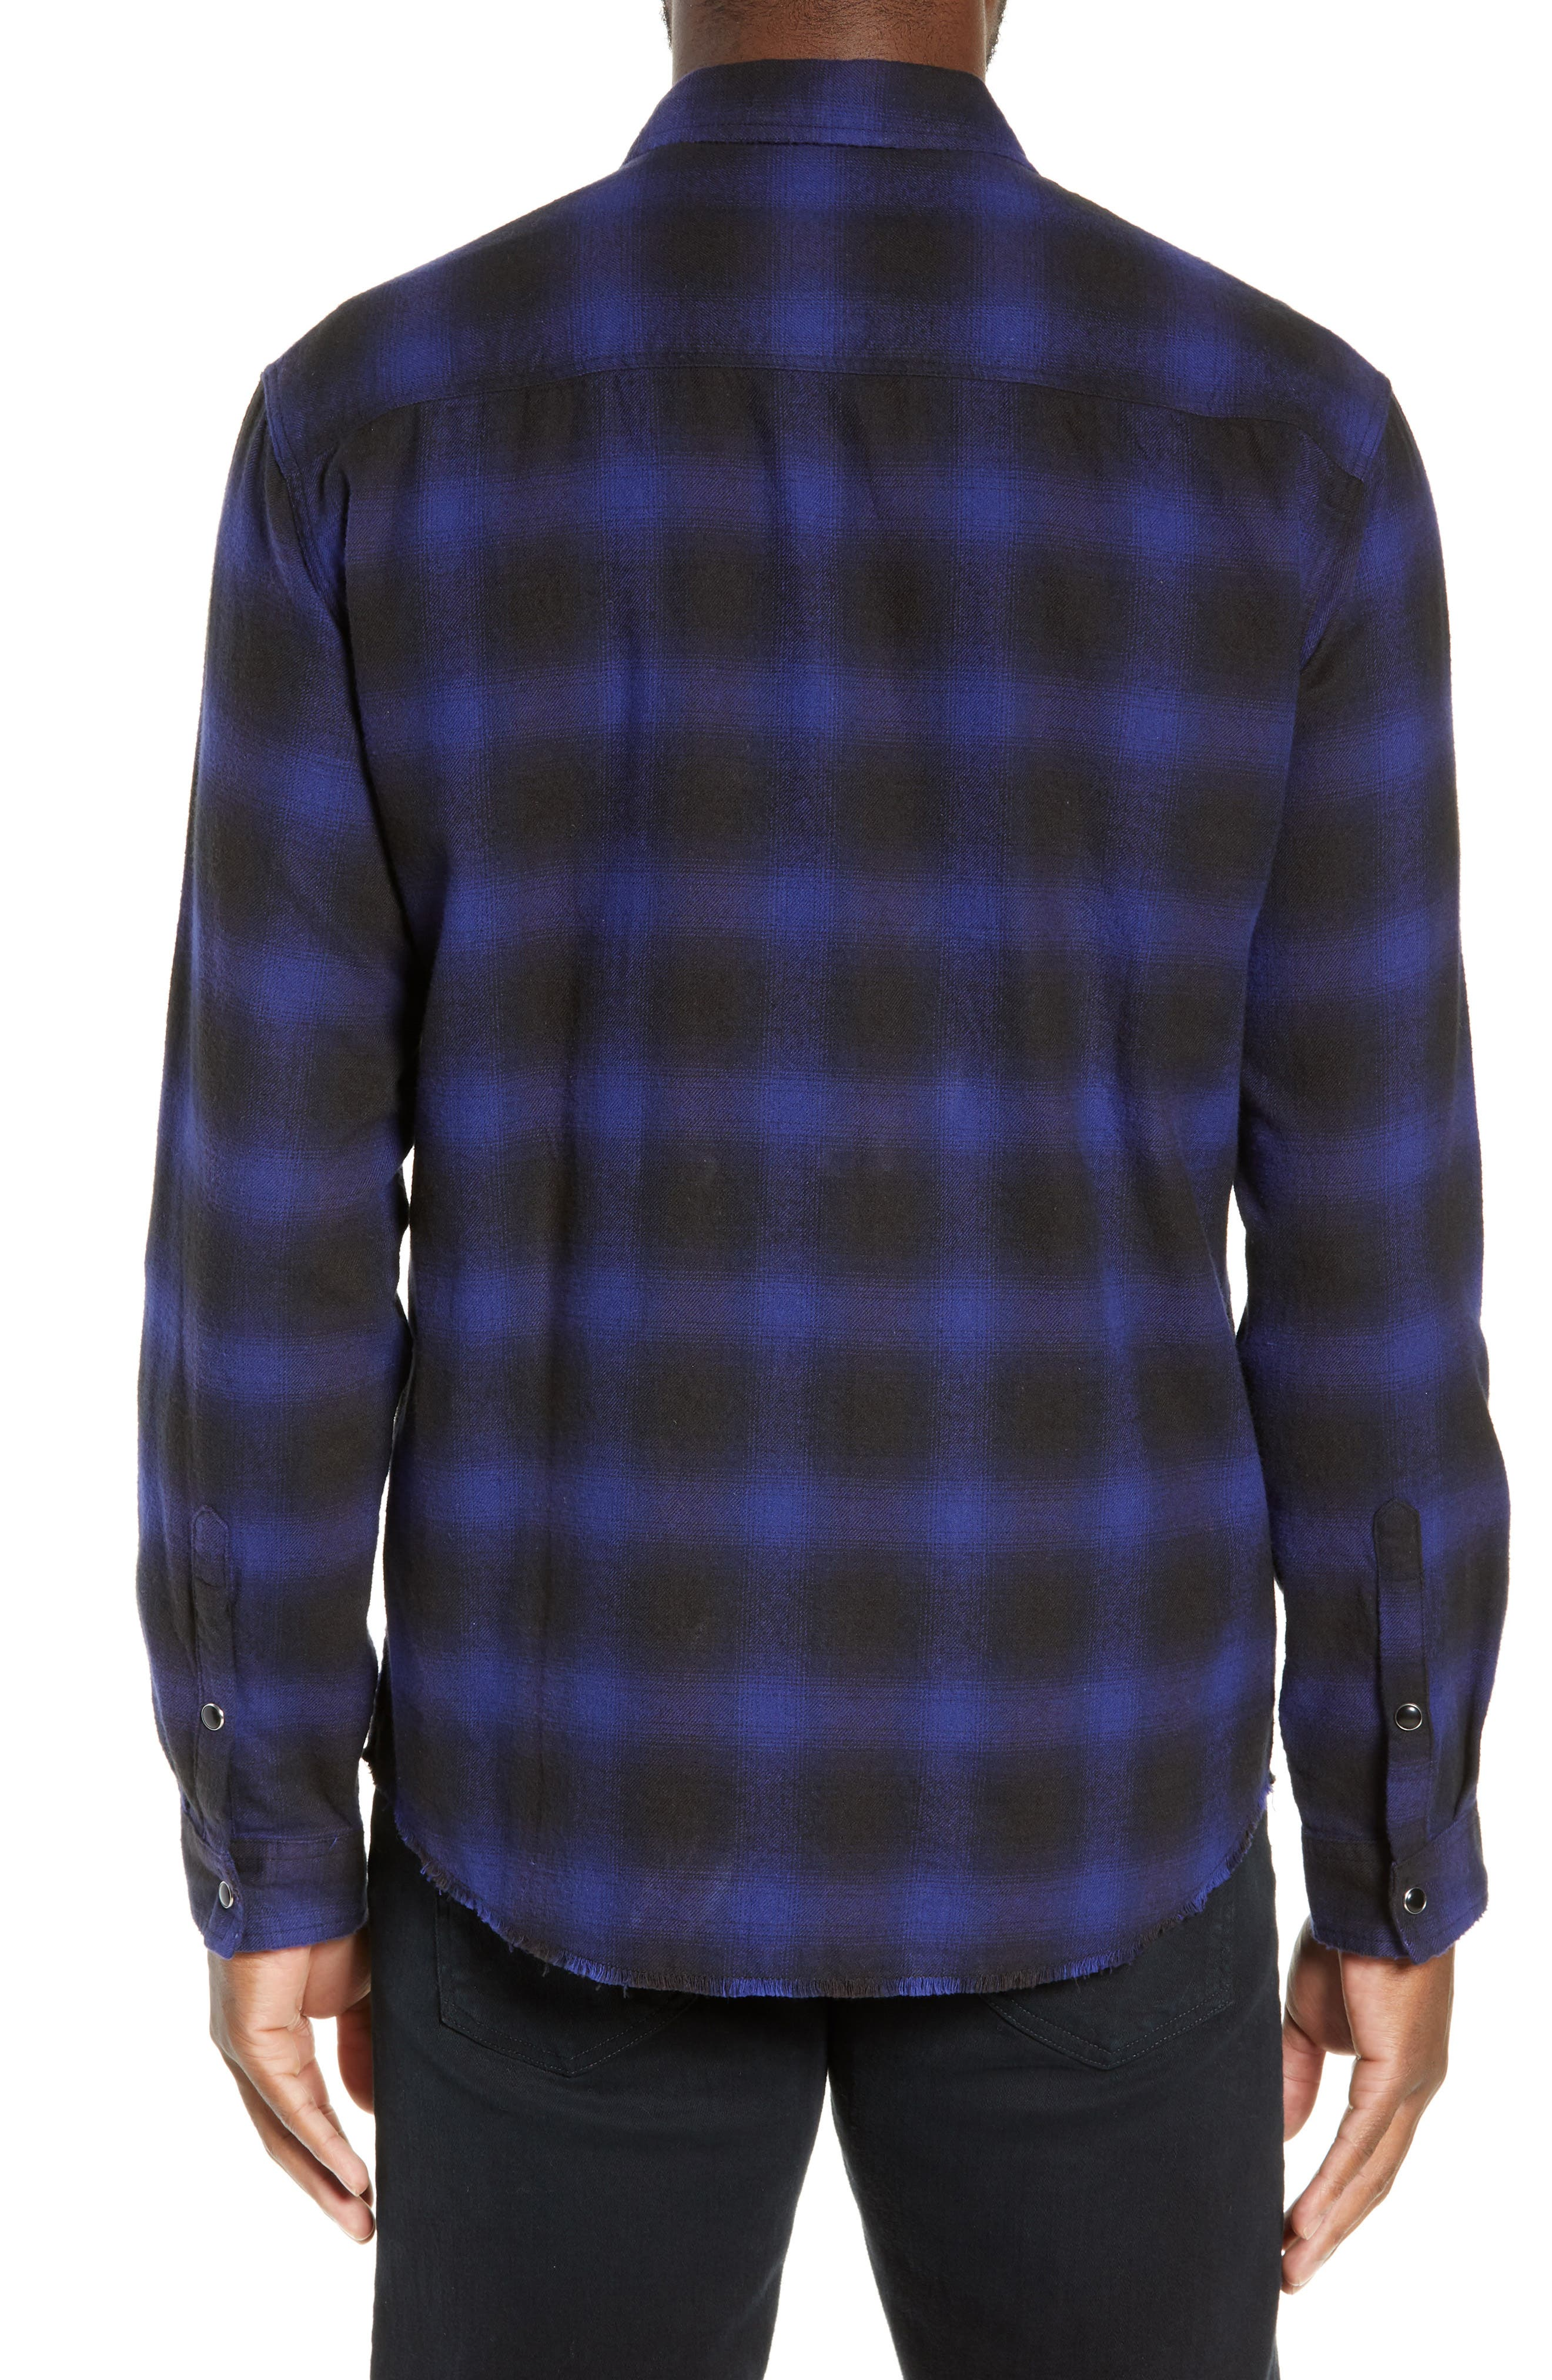 THE KOOPLES, Zip Flannel Jacket, Alternate thumbnail 2, color, BLUE BLACK